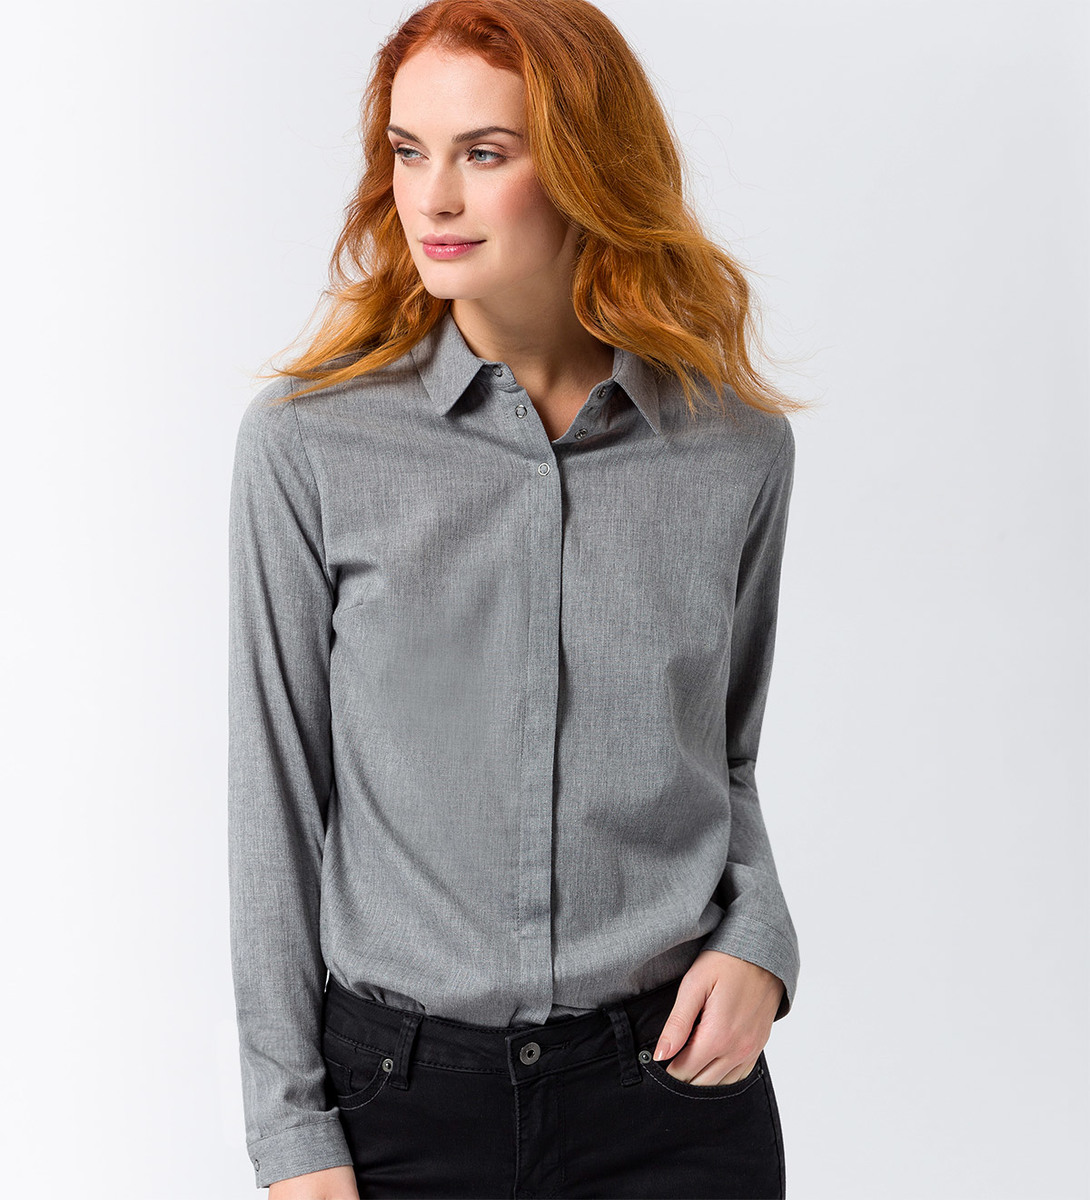 Bluse aus Viskose in anthracite